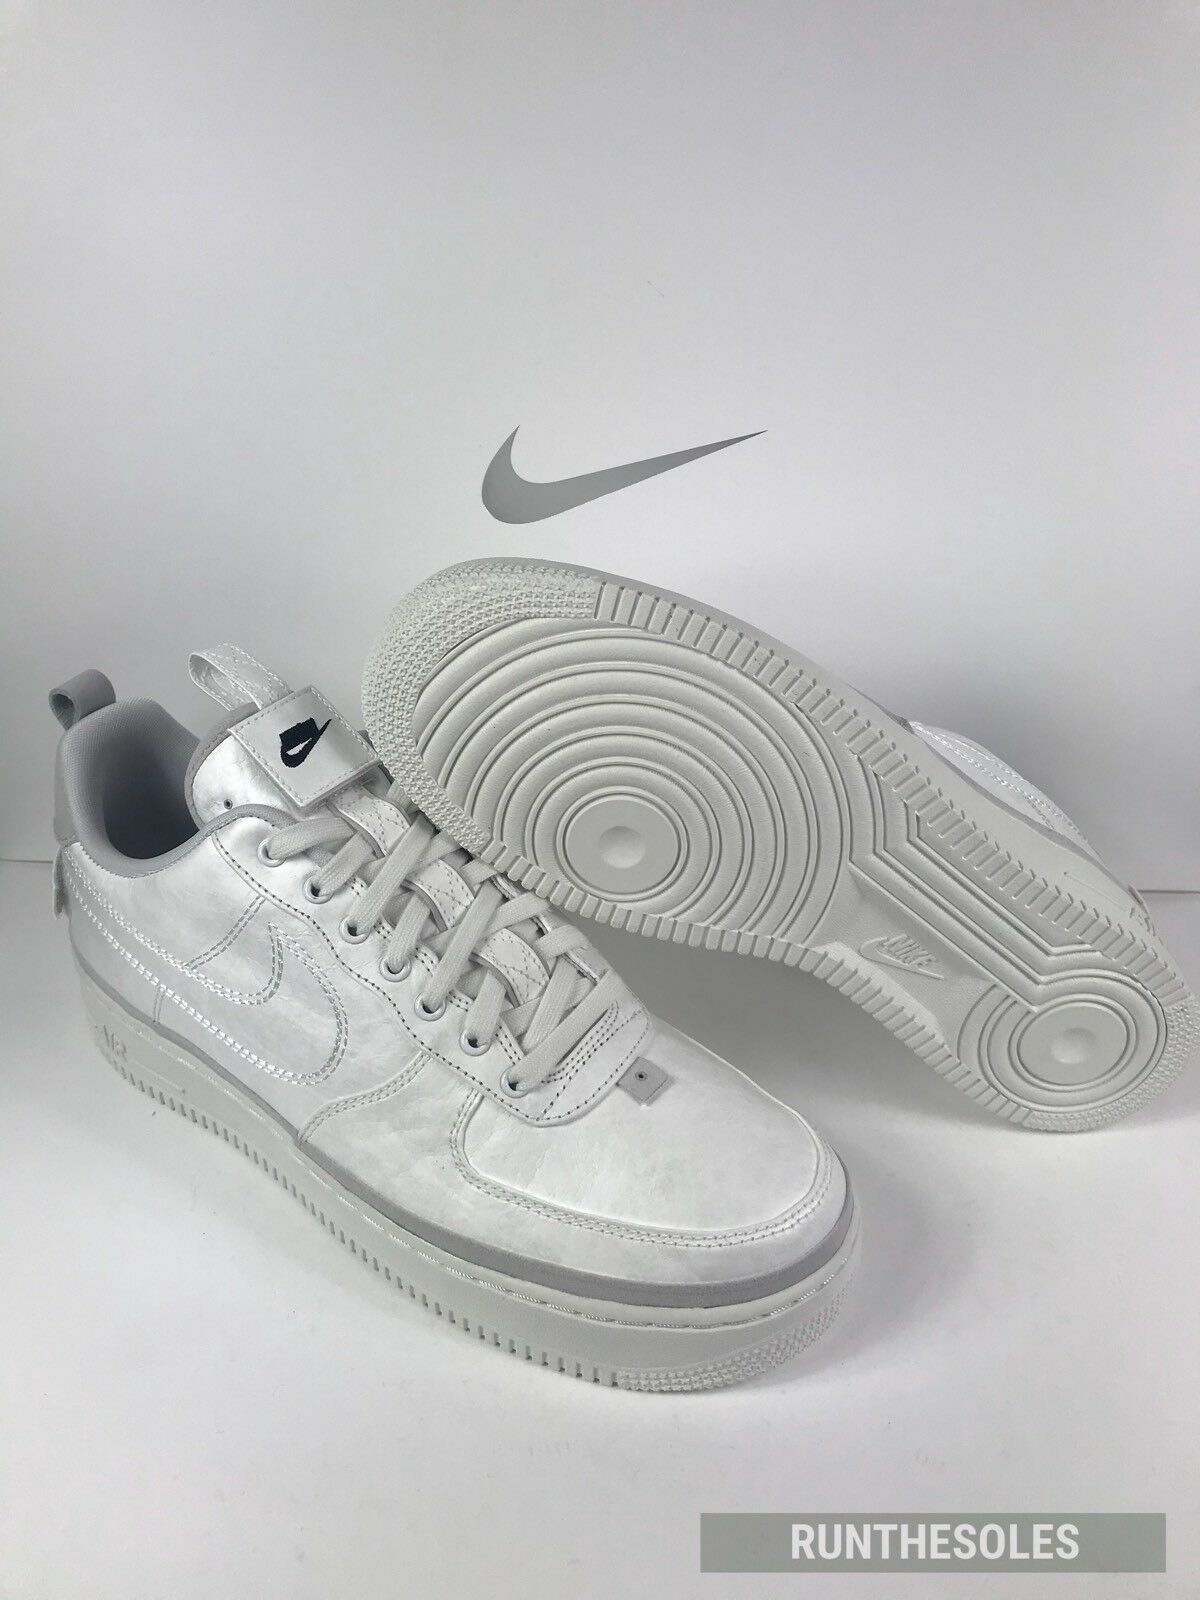 NIKE AIR FORCE 1 '07 QS LOW ALL STAR 90/10 SHOE AH6767-001 SHOE MEN SIZE 11.5